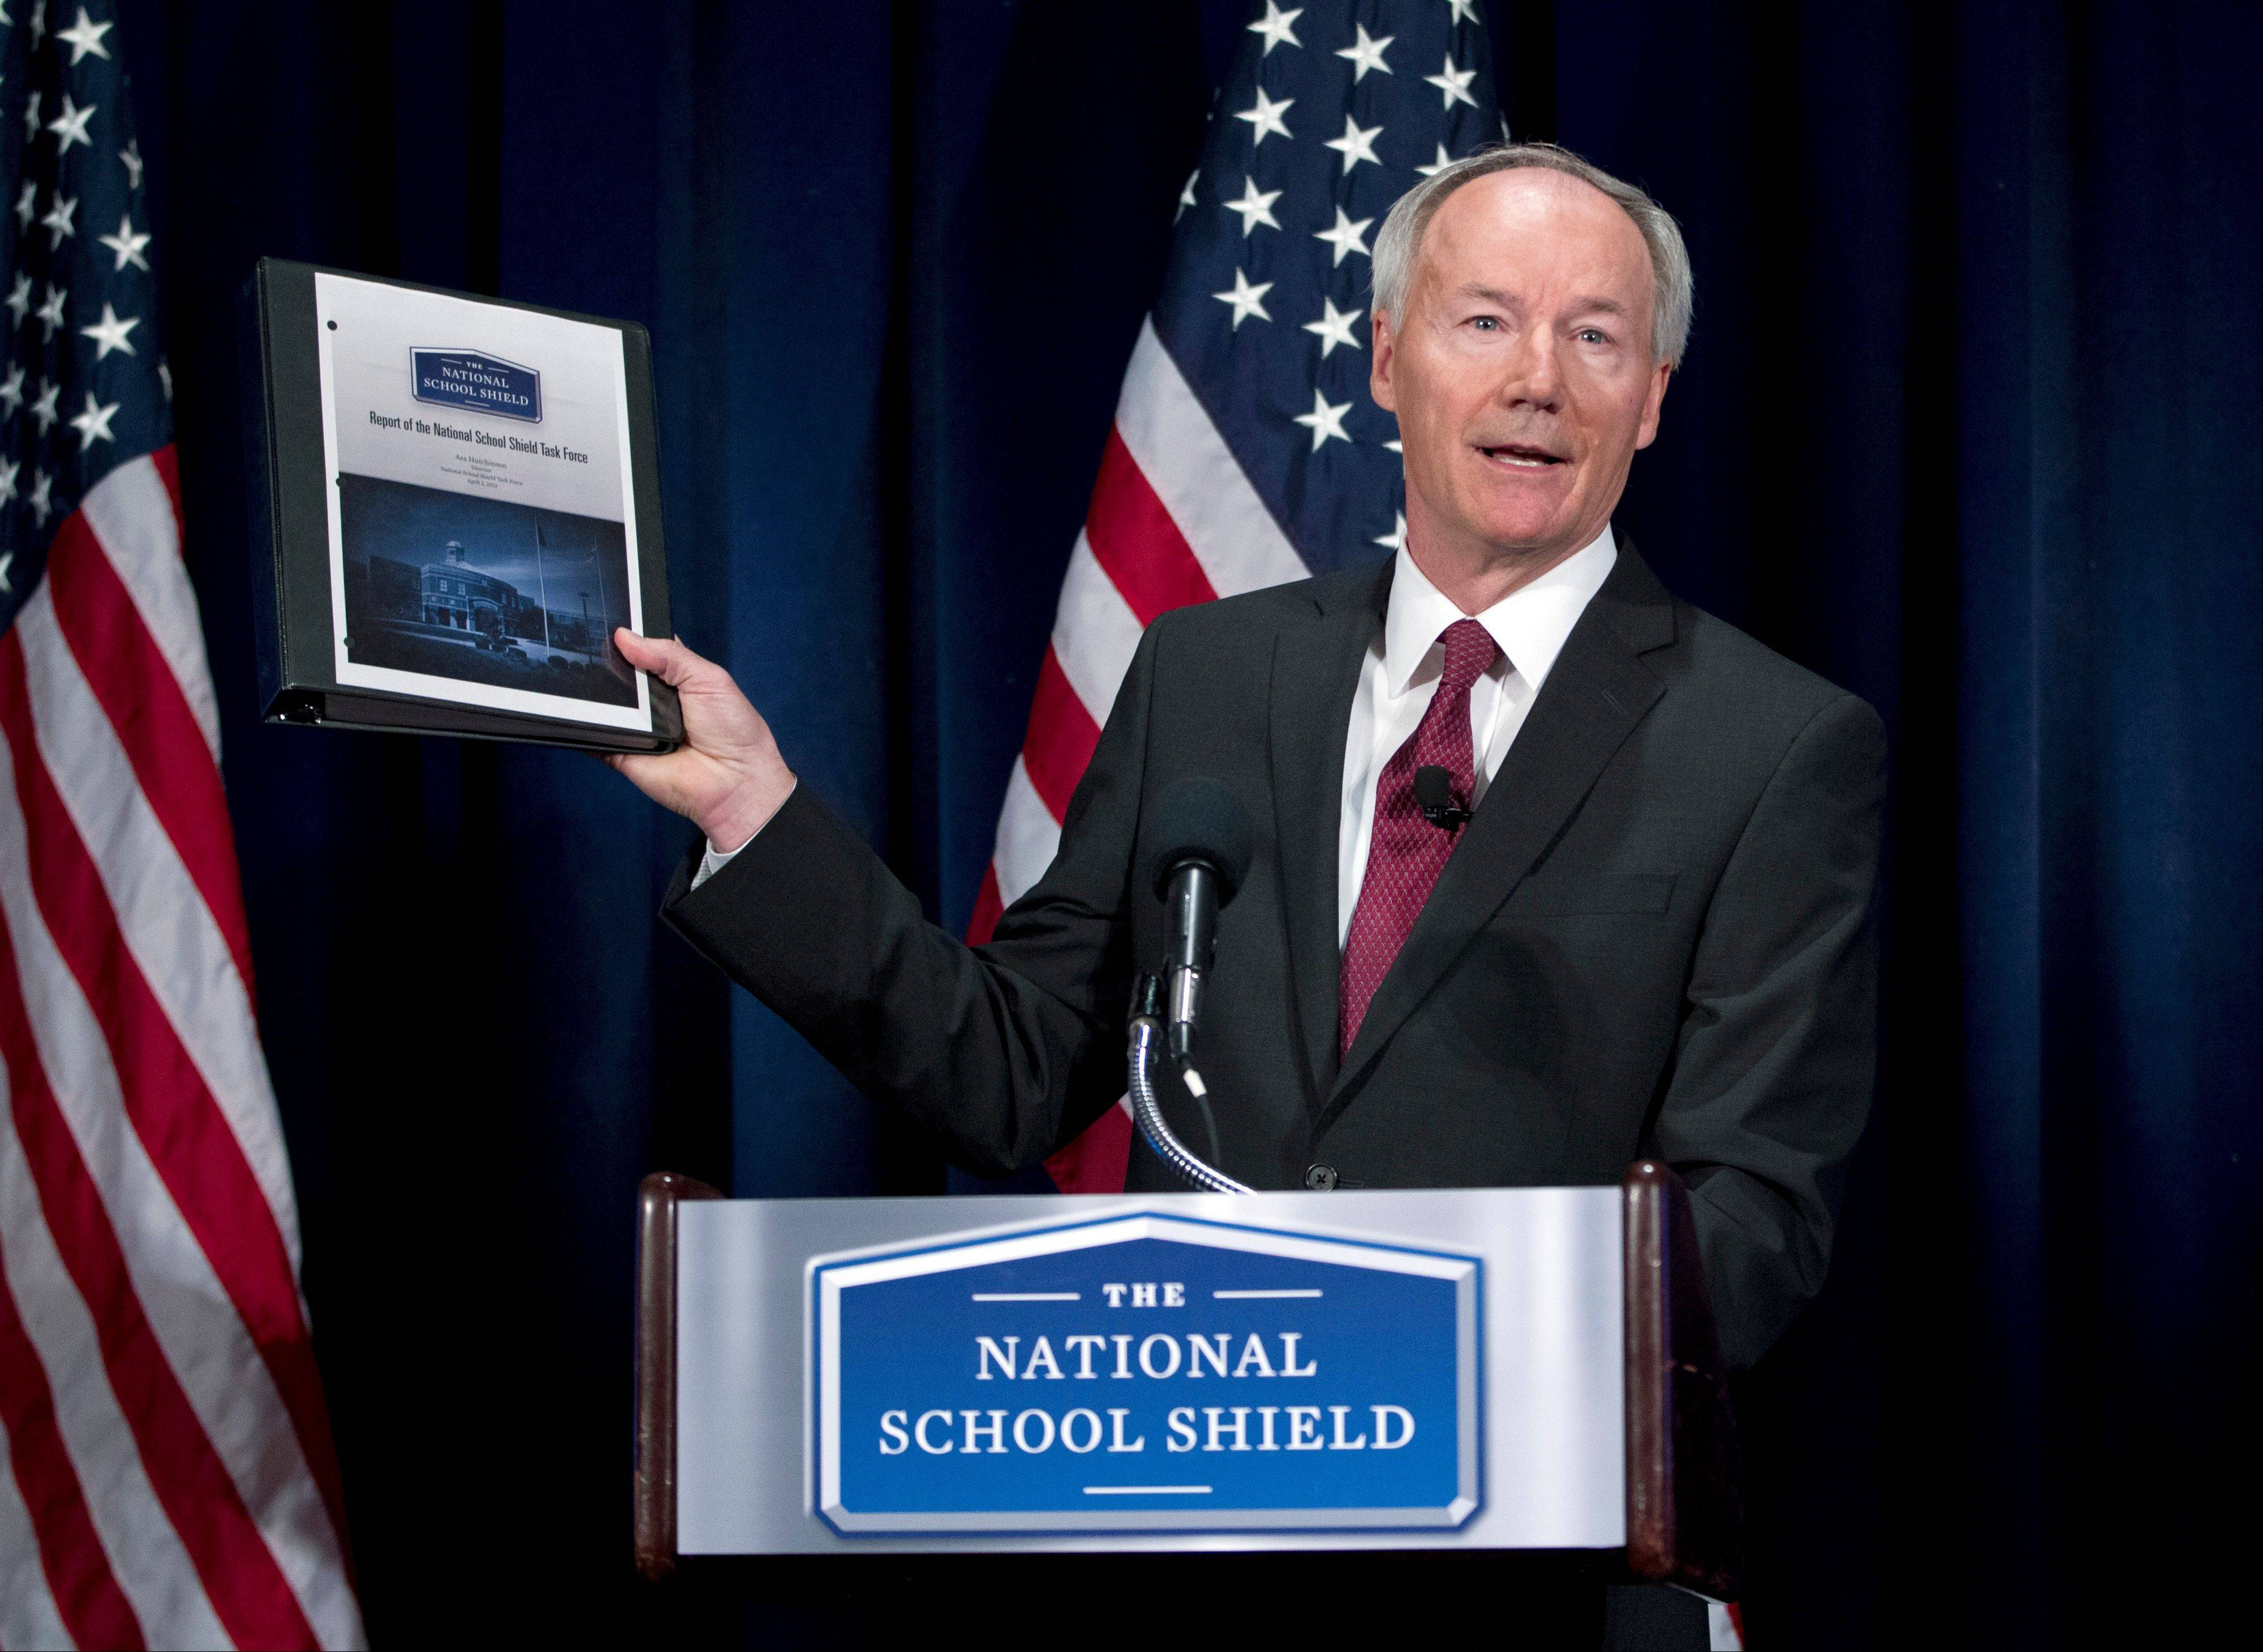 National School Shield Task Force Director, former Arkansas Rep. Asa Hutchinson, holds a copy of group�s study during a news conference at National Press Club in Washington Tuesday. The National Rifle Association�s study recommends schools across the nation each train and arm at least one staff member.